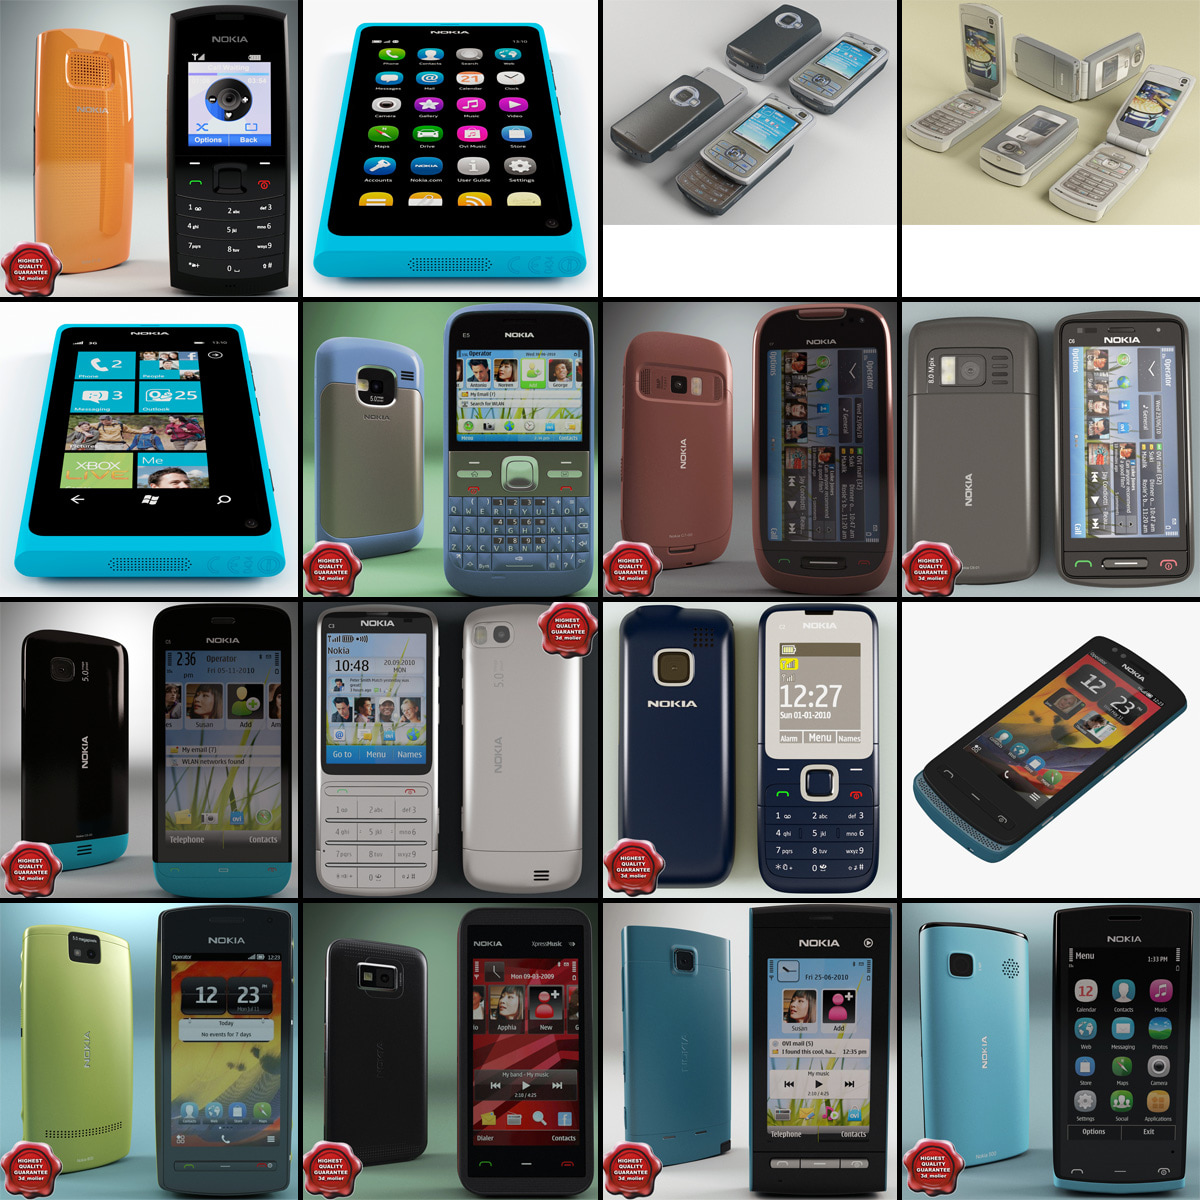 Nokia_Phones_Collection_V6_000.jpg